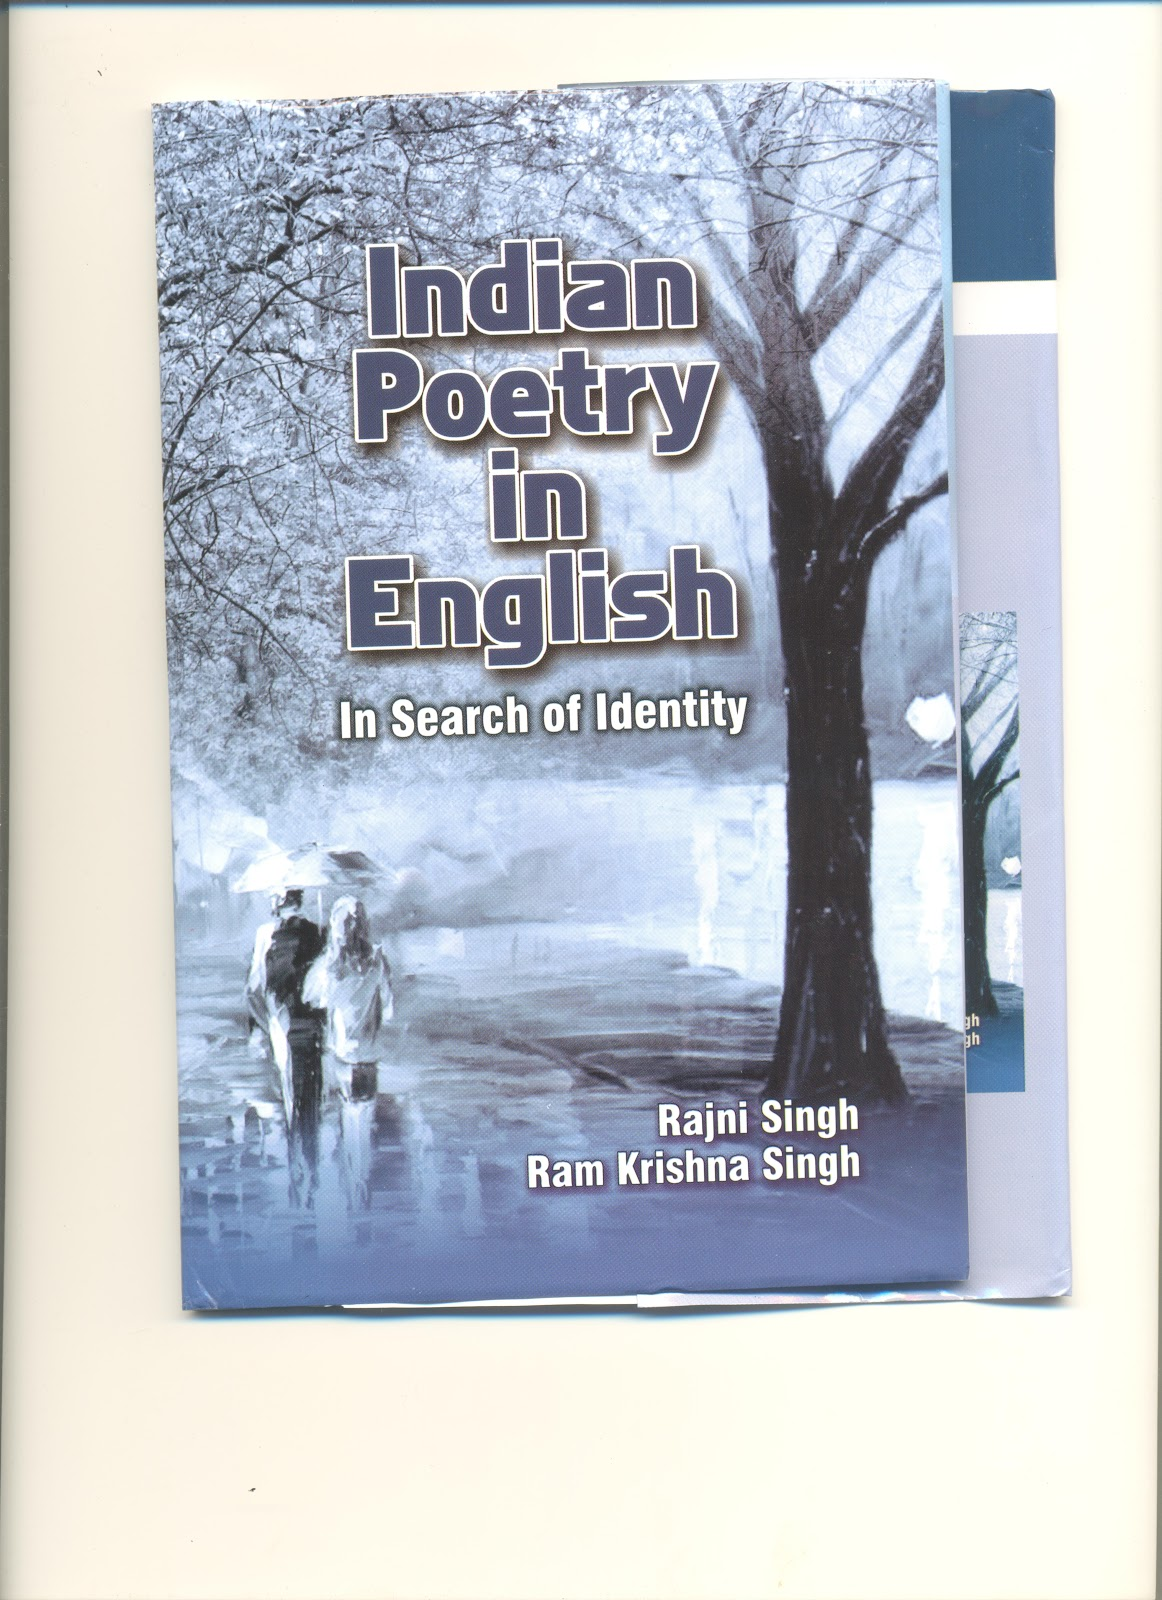 r k singh n english poet n poetry in english in authors press new delhi has published a new book n poetry in english in search of identity jointly edited by r k singh and rajni singh